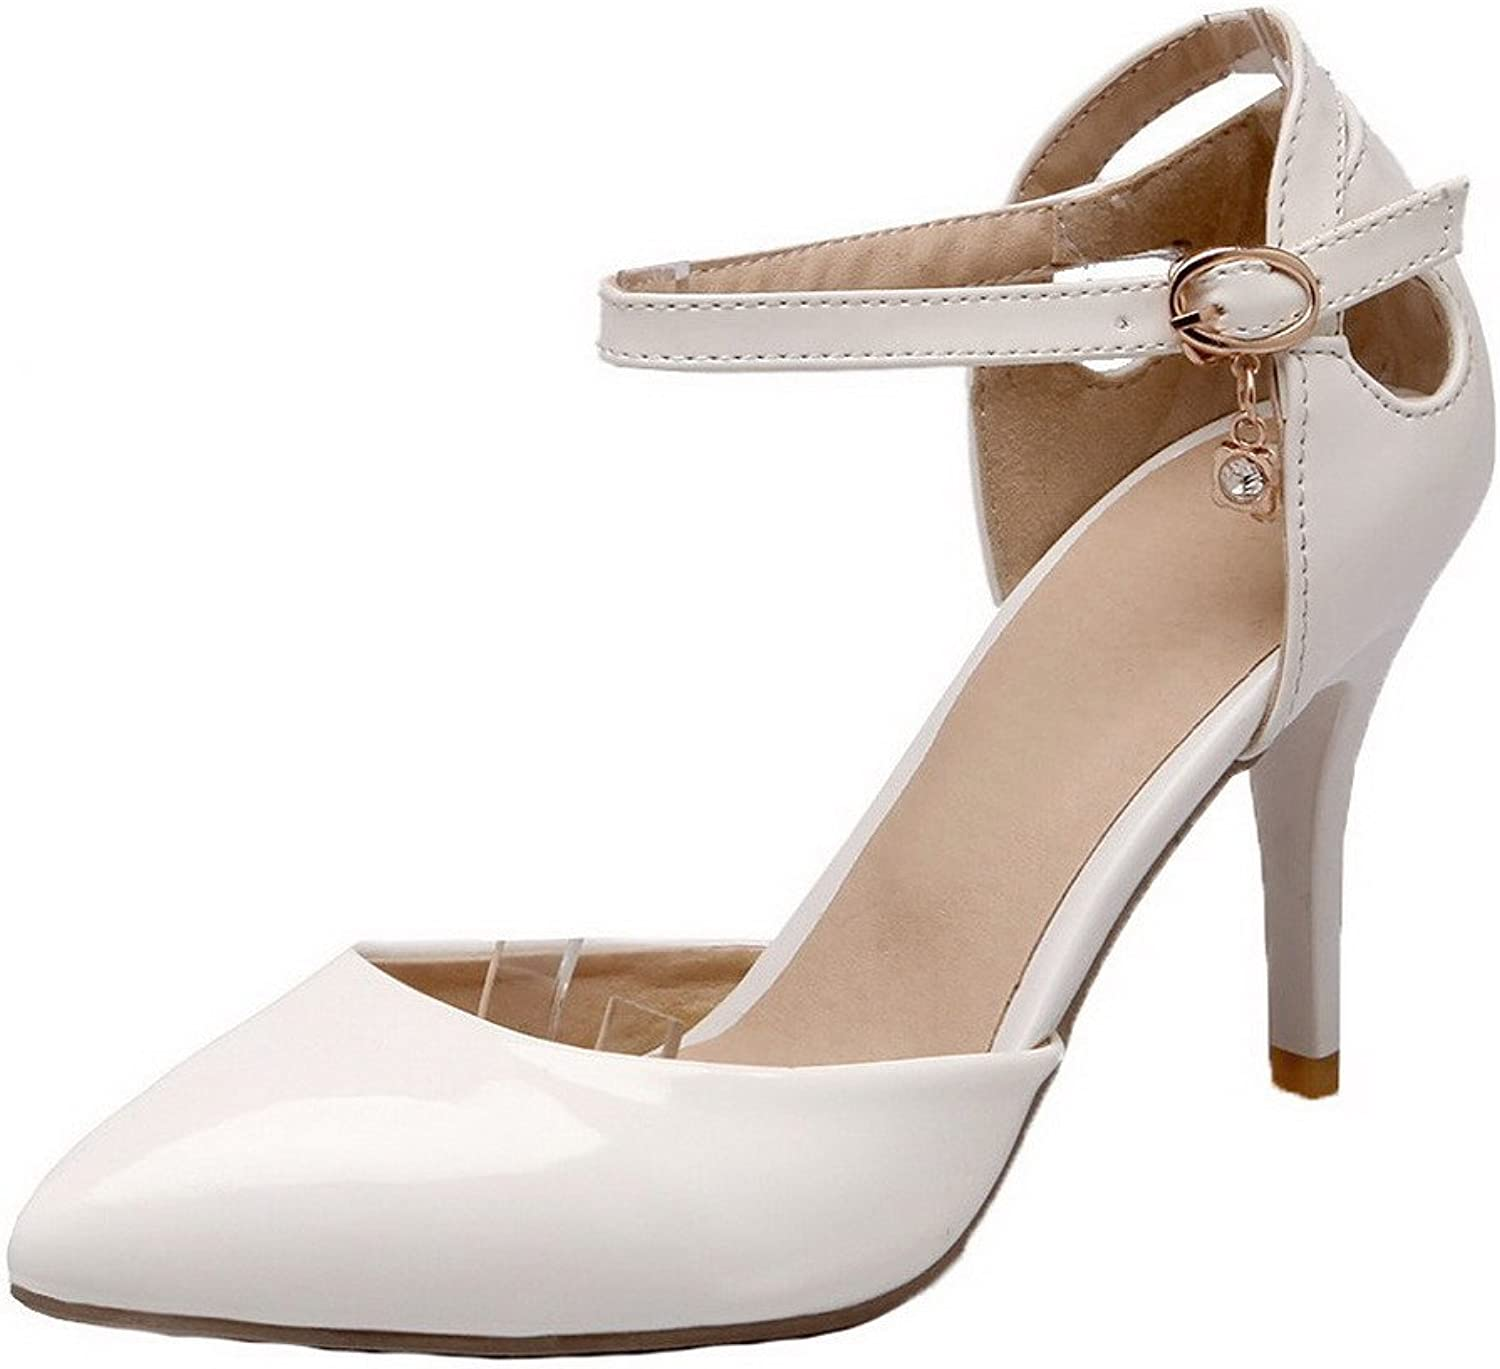 WeiPoot Women's Buckle High-Heels Patent Leather Solid Closed-Toe Sandals, EGHLH005616